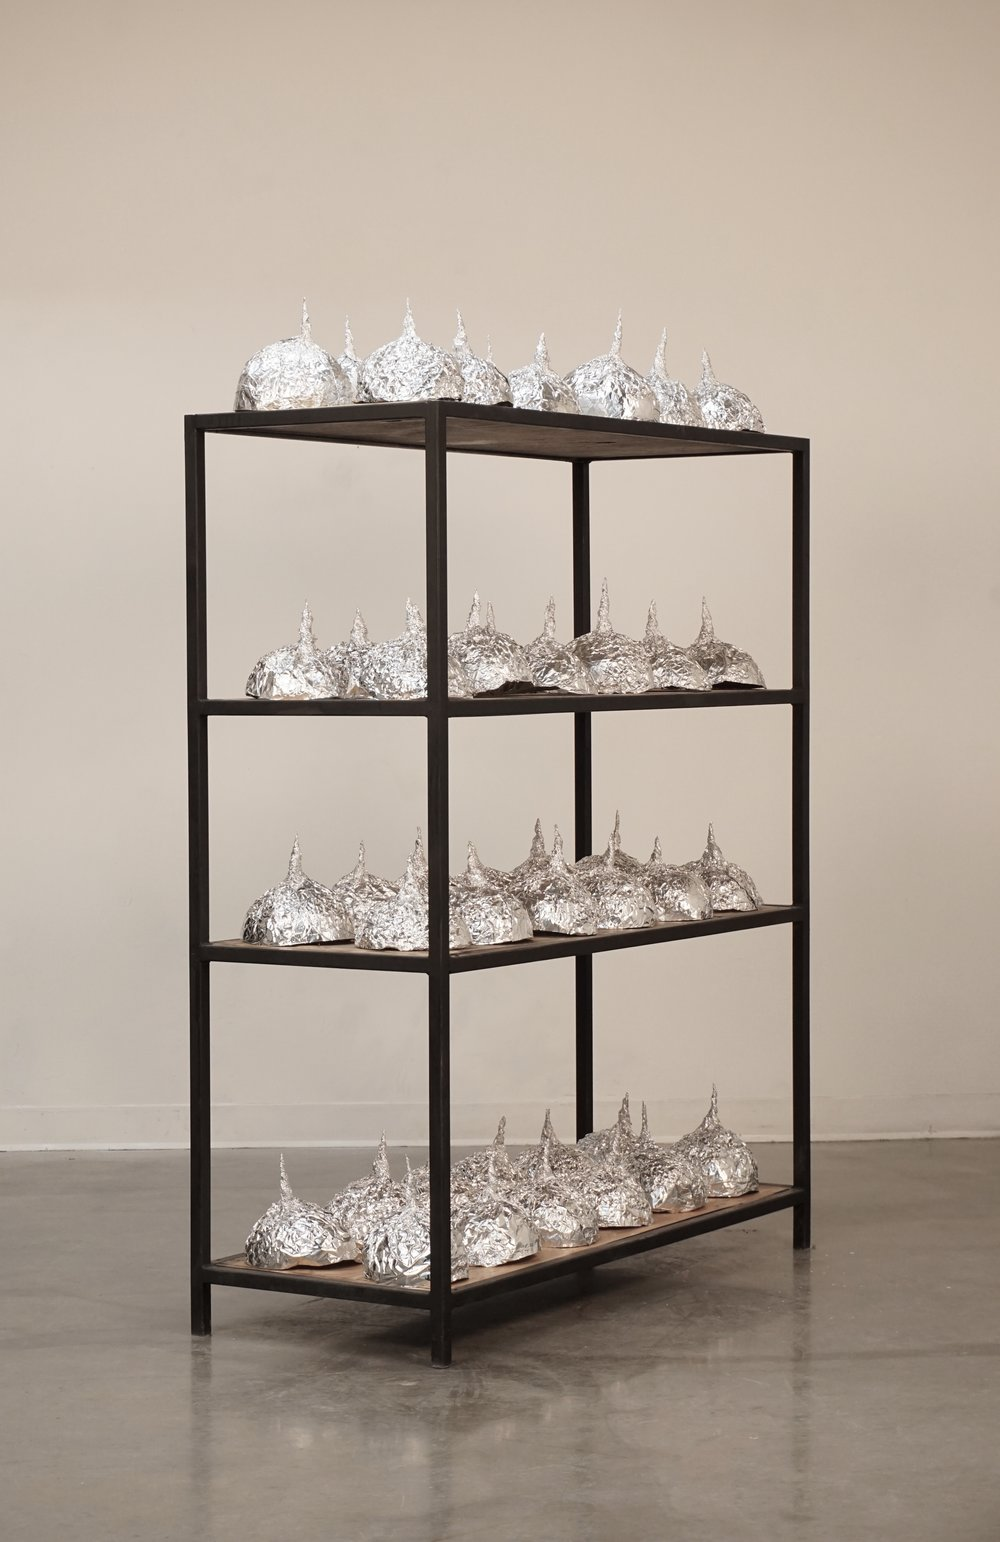 tin foil hats sculpture conspiracy theory lukas liese.jpg